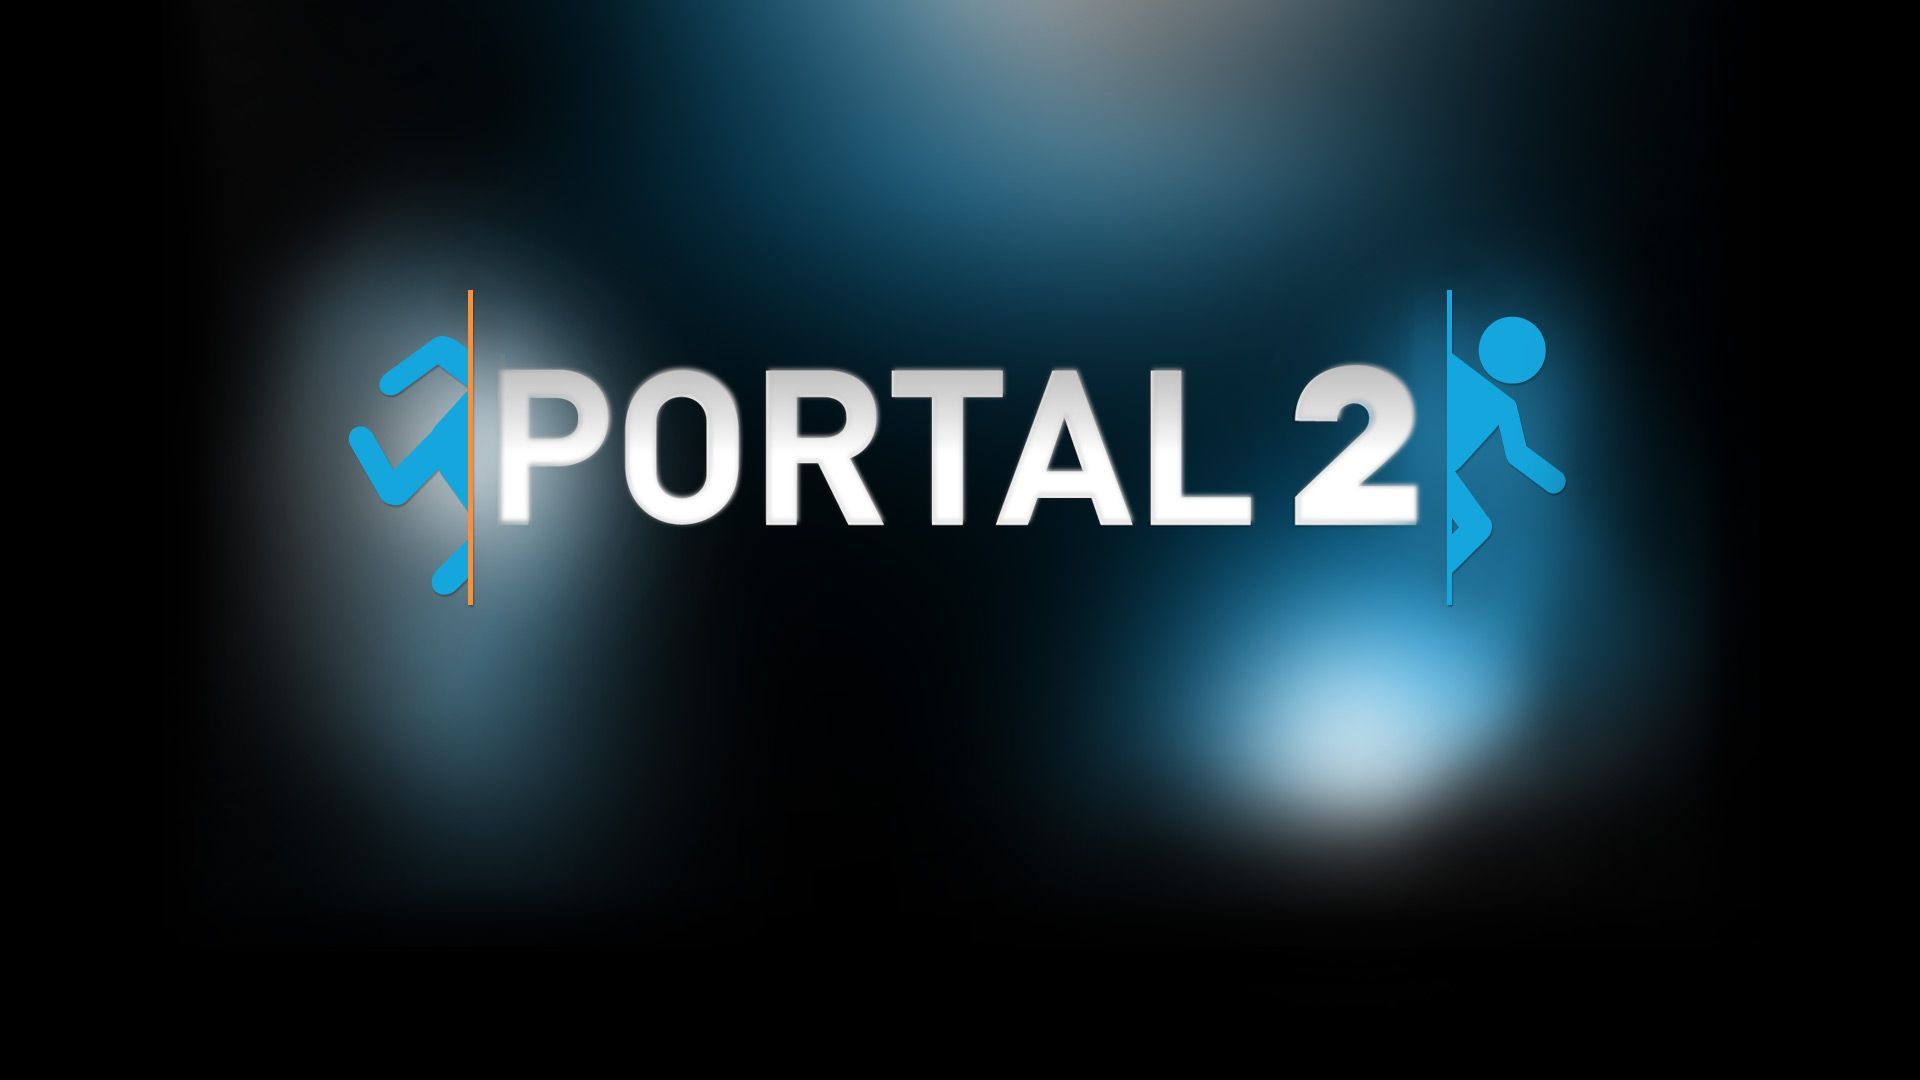 portal backgrounds